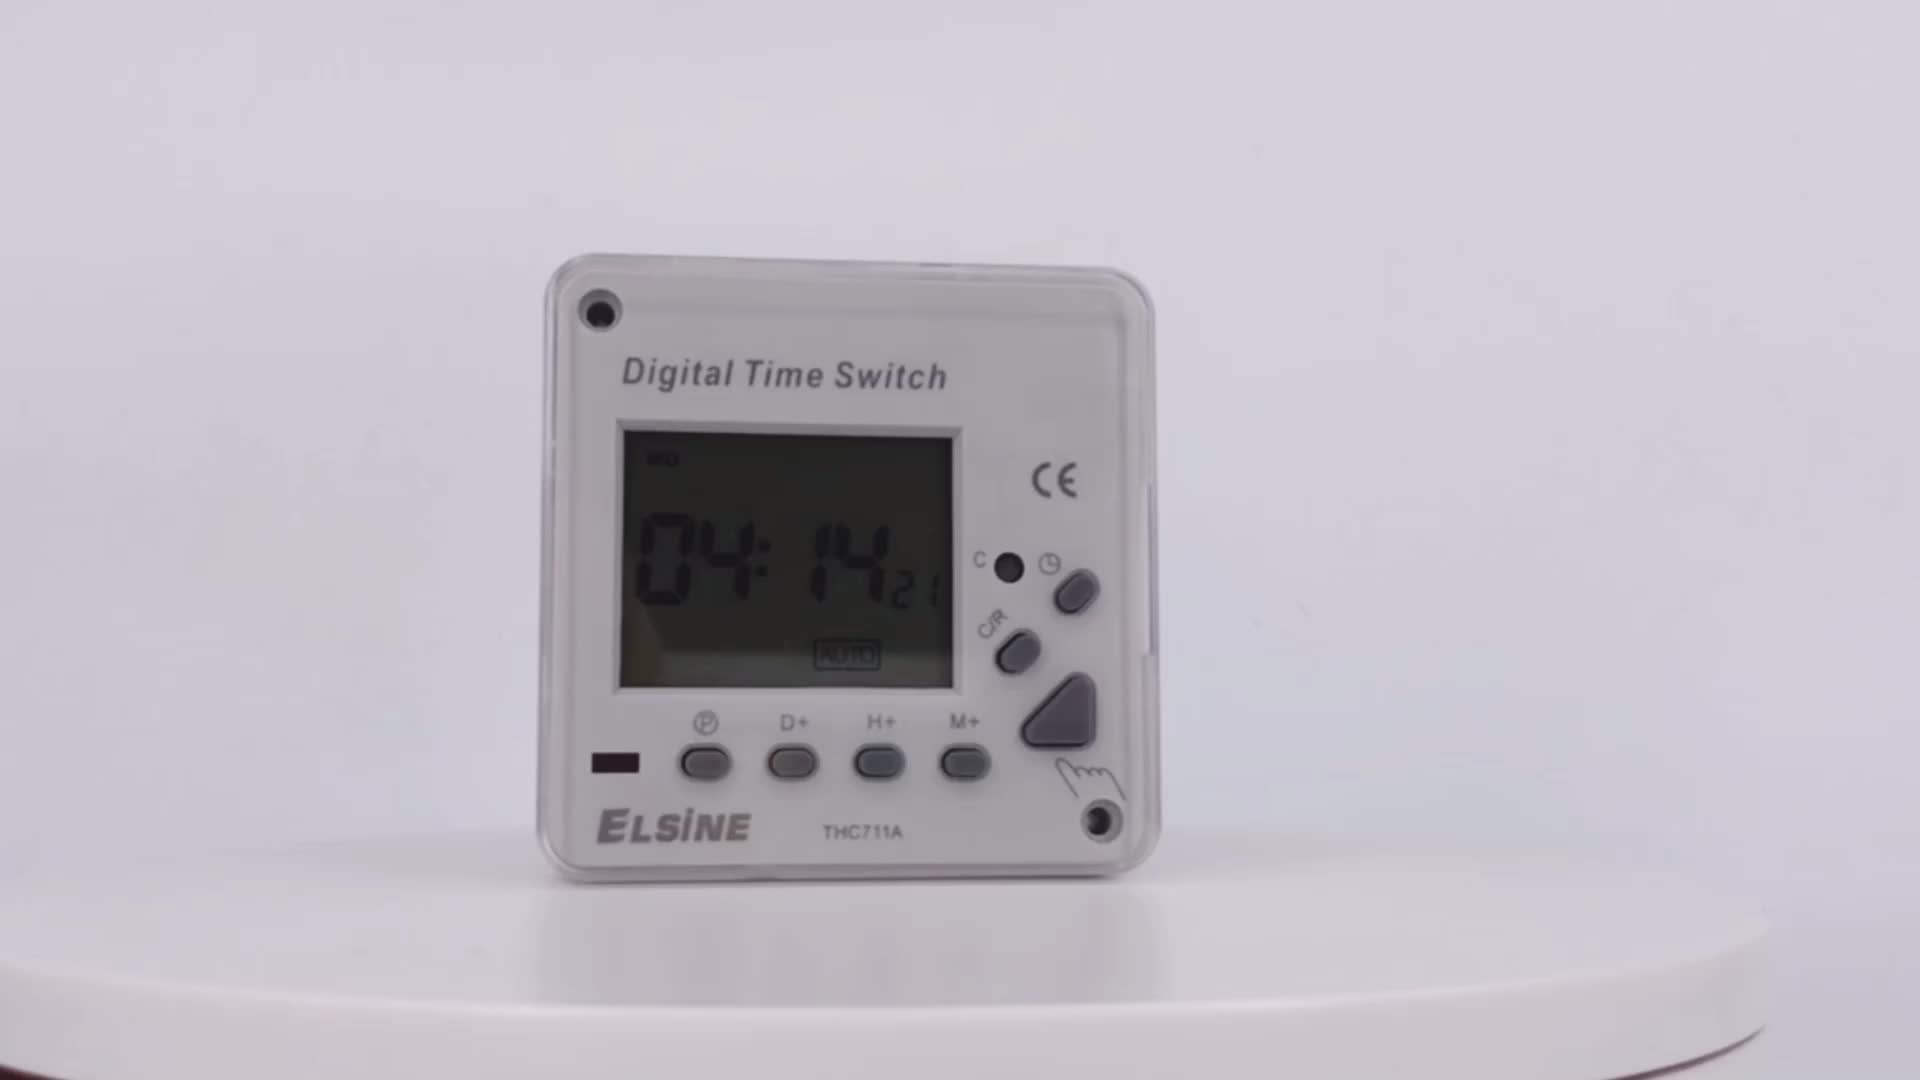 THC711 Weekly Programmable Timer Switch Battery Powered digital countdown timer switch